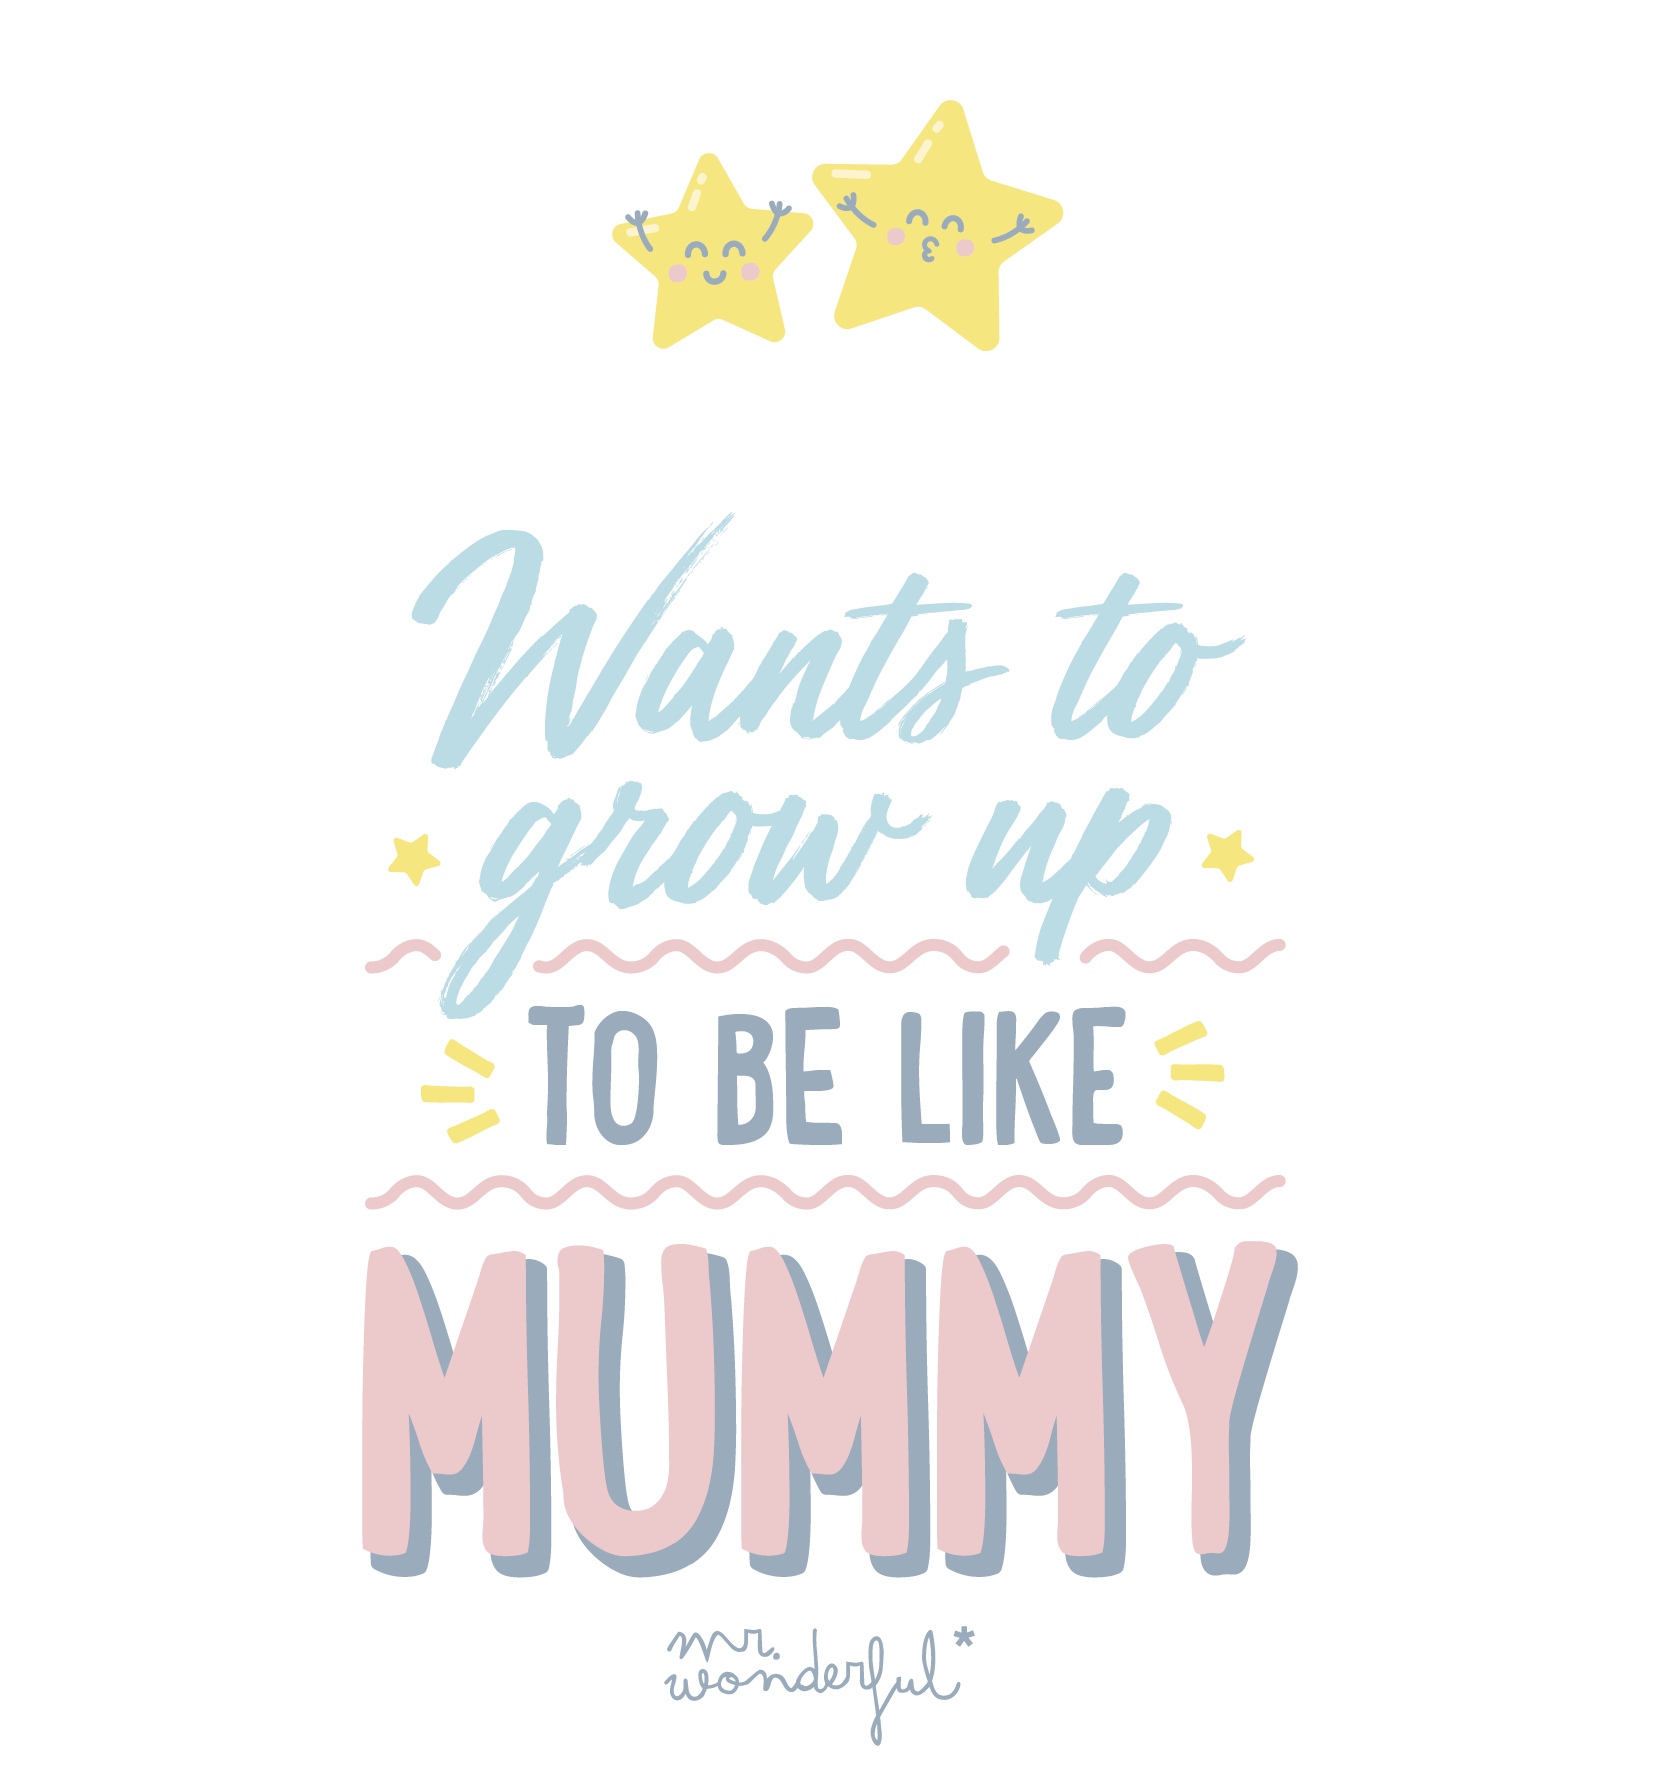 To be like mummy